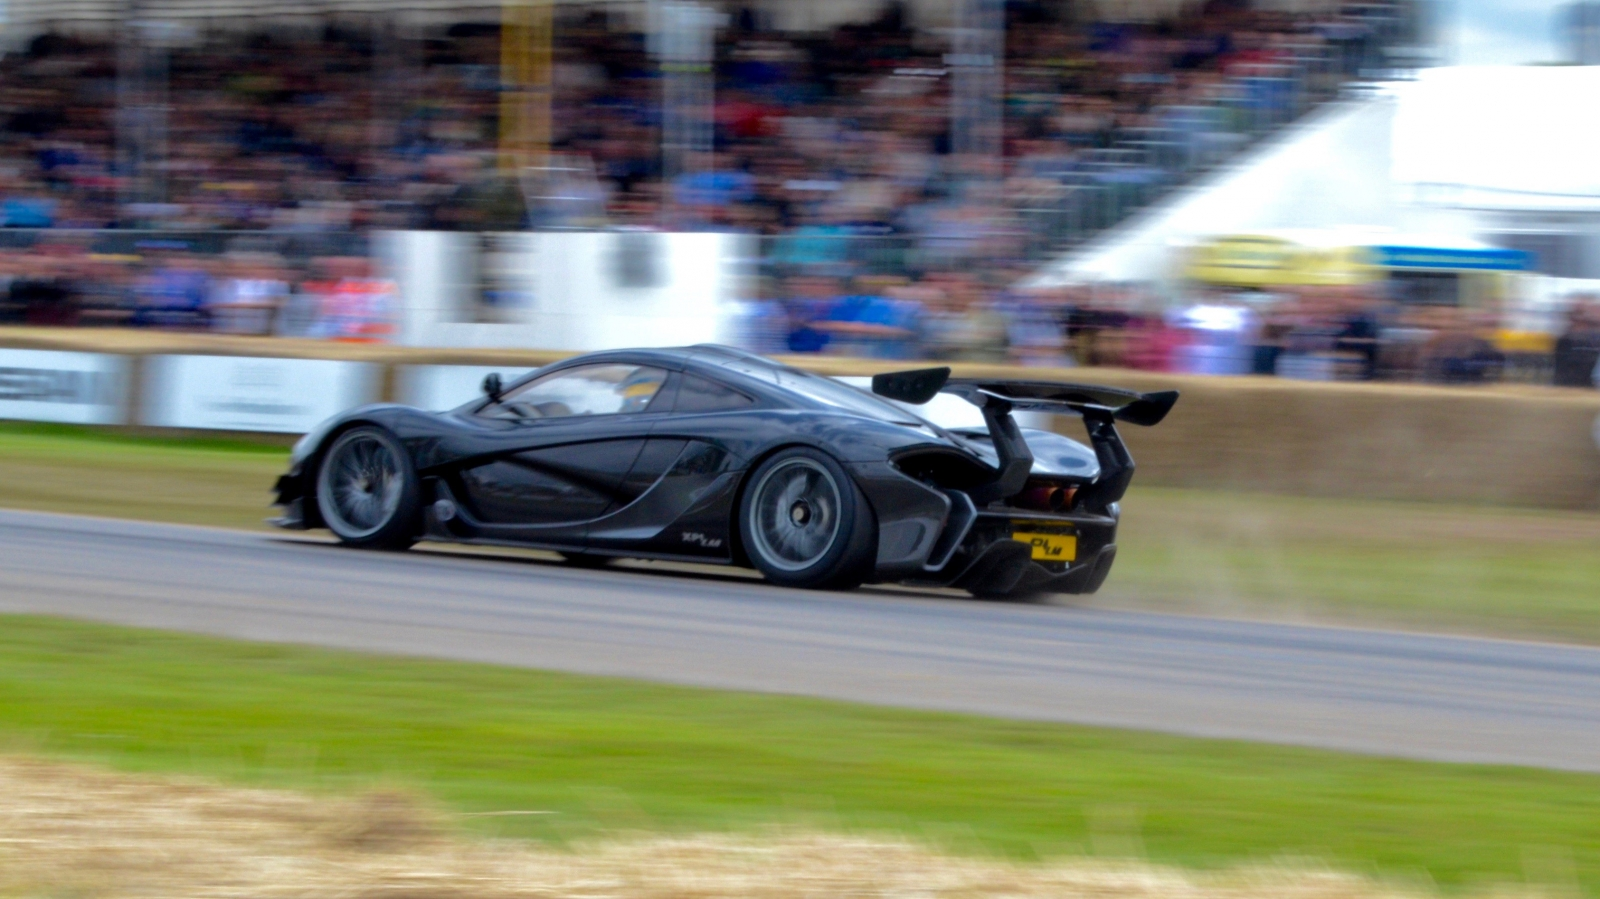 McLaren P1 LM at Goodwood 2016